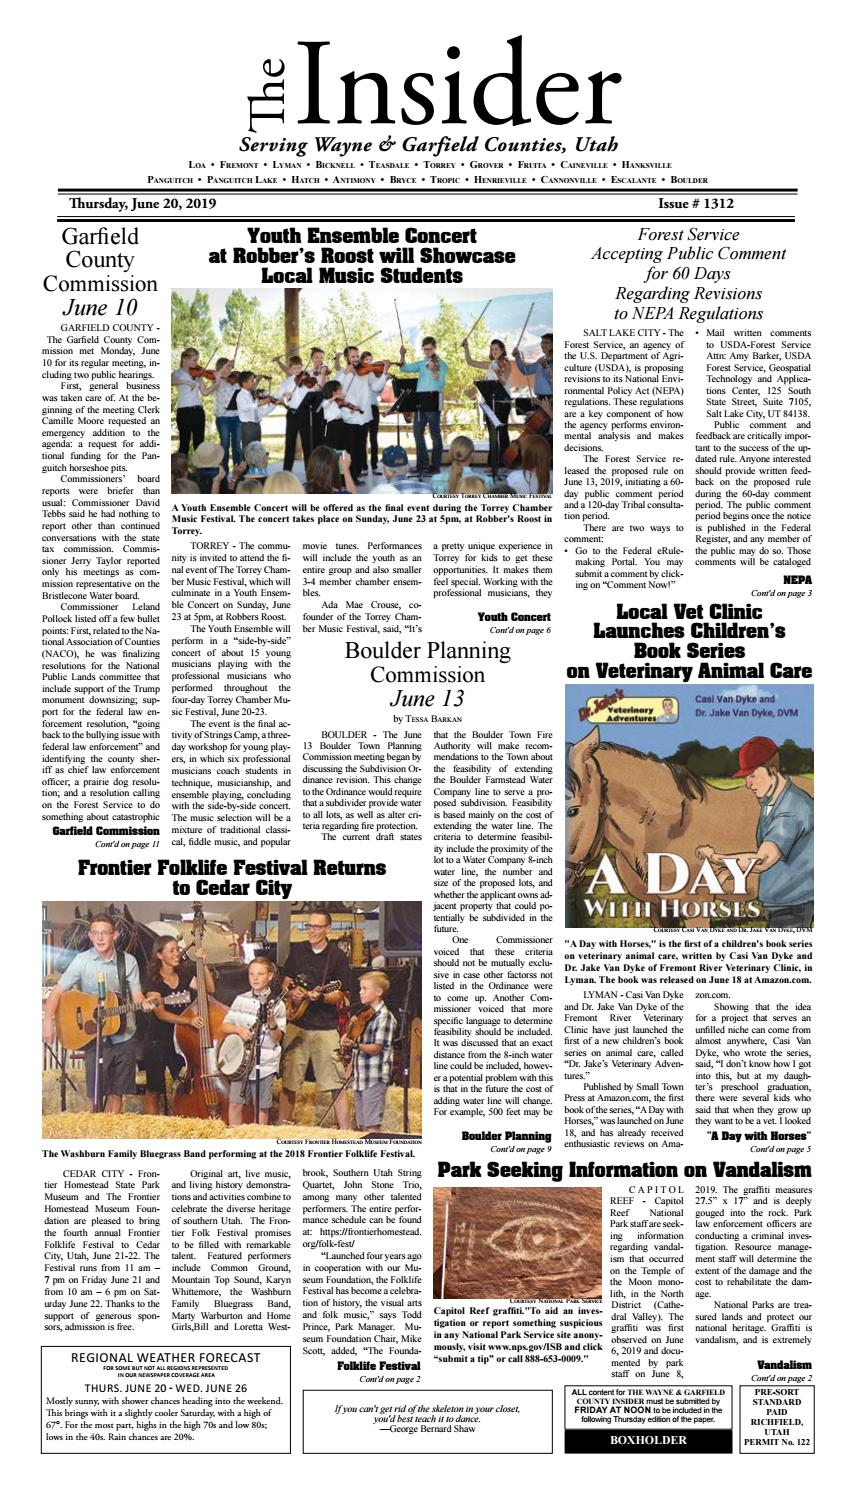 The Wayne & Garfield County Insider June 20, 2019 by